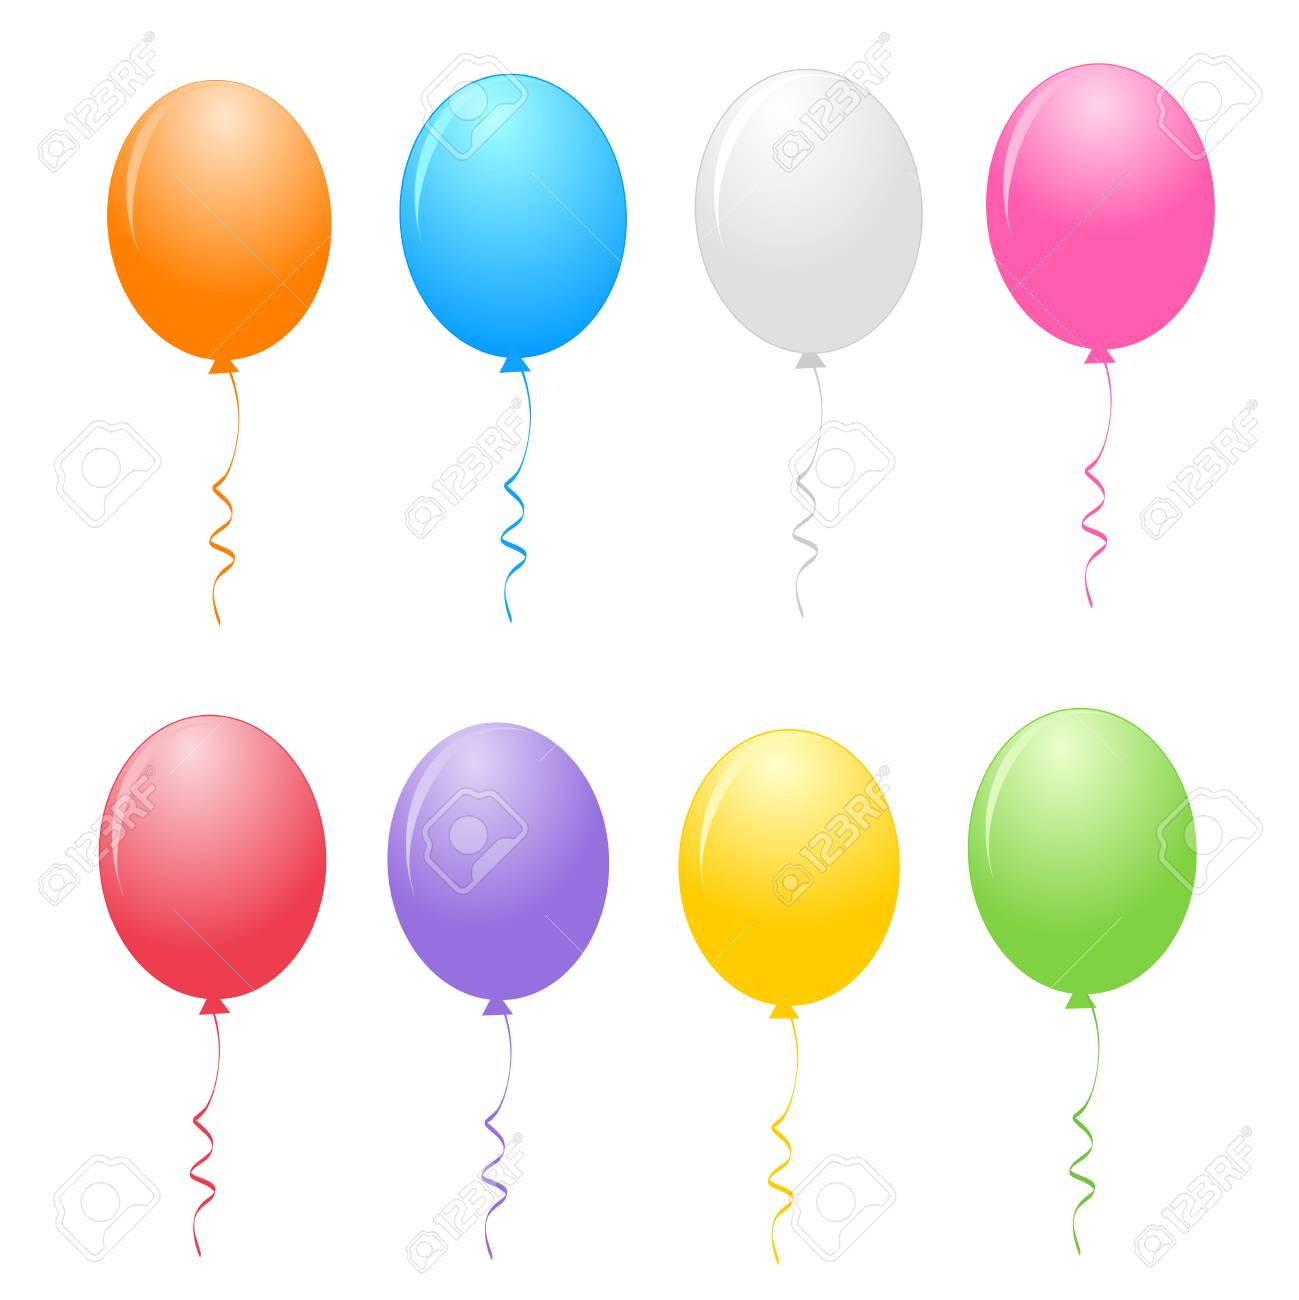 hight resolution of colorful balloons clipart isolated on white background stock vector 38545904